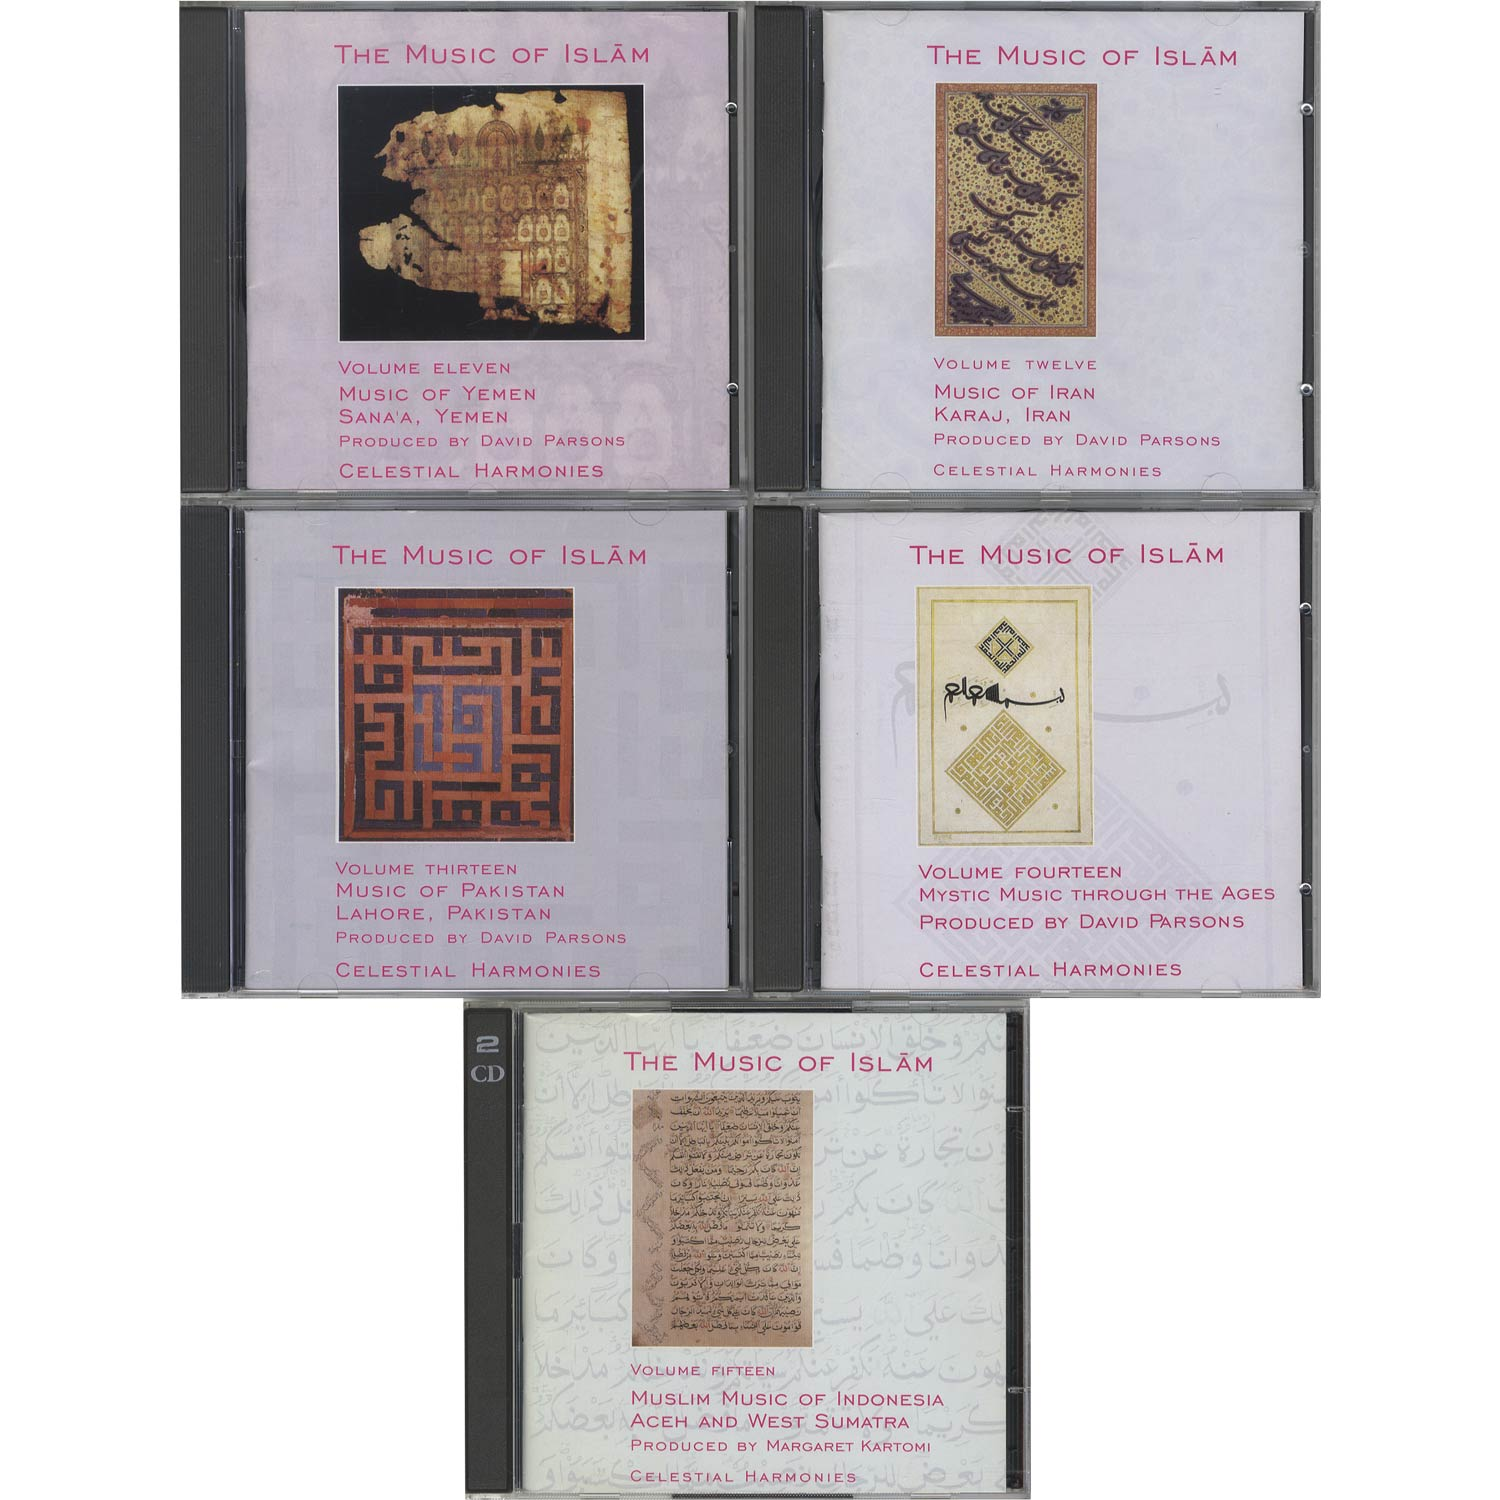 The Music of Islām Complete Edition[image5]